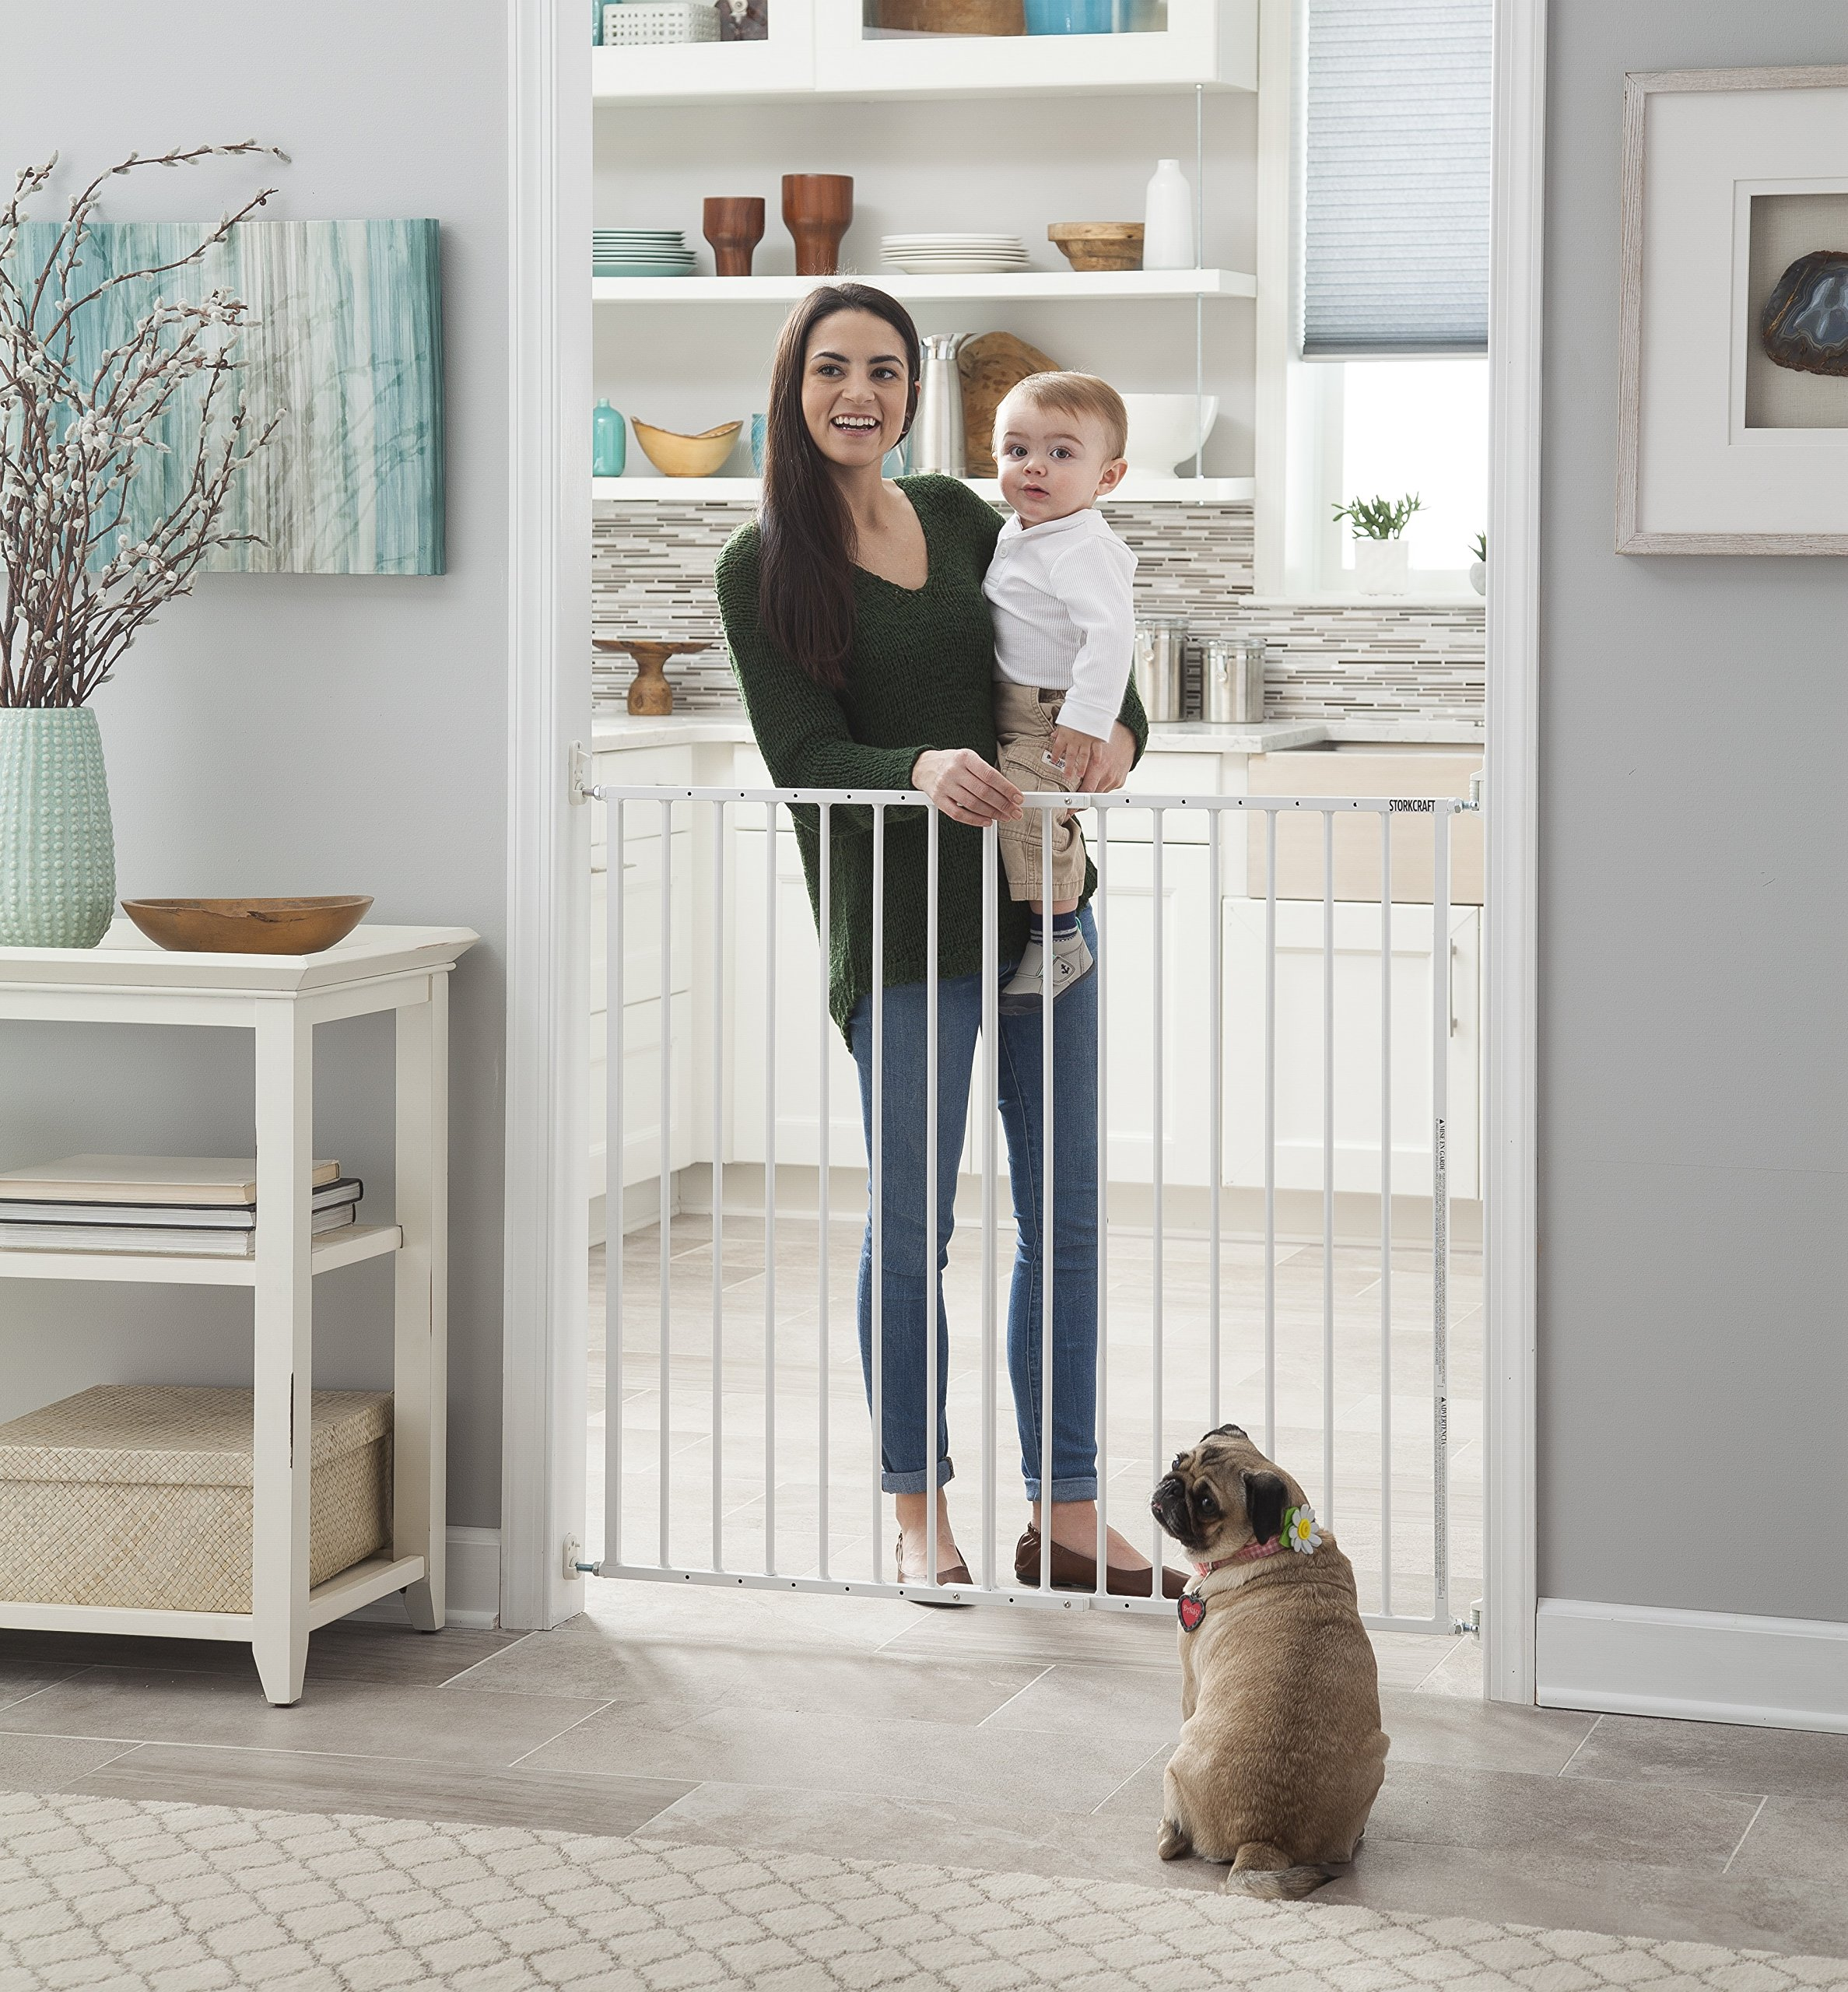 Storkcraft Easy Walk-Thru Tall Metal Safety Gate, White Adjustable Baby Safety Gate For Doorways and Stairs, Great for Children and Pets by Stork Craft (Image #3)